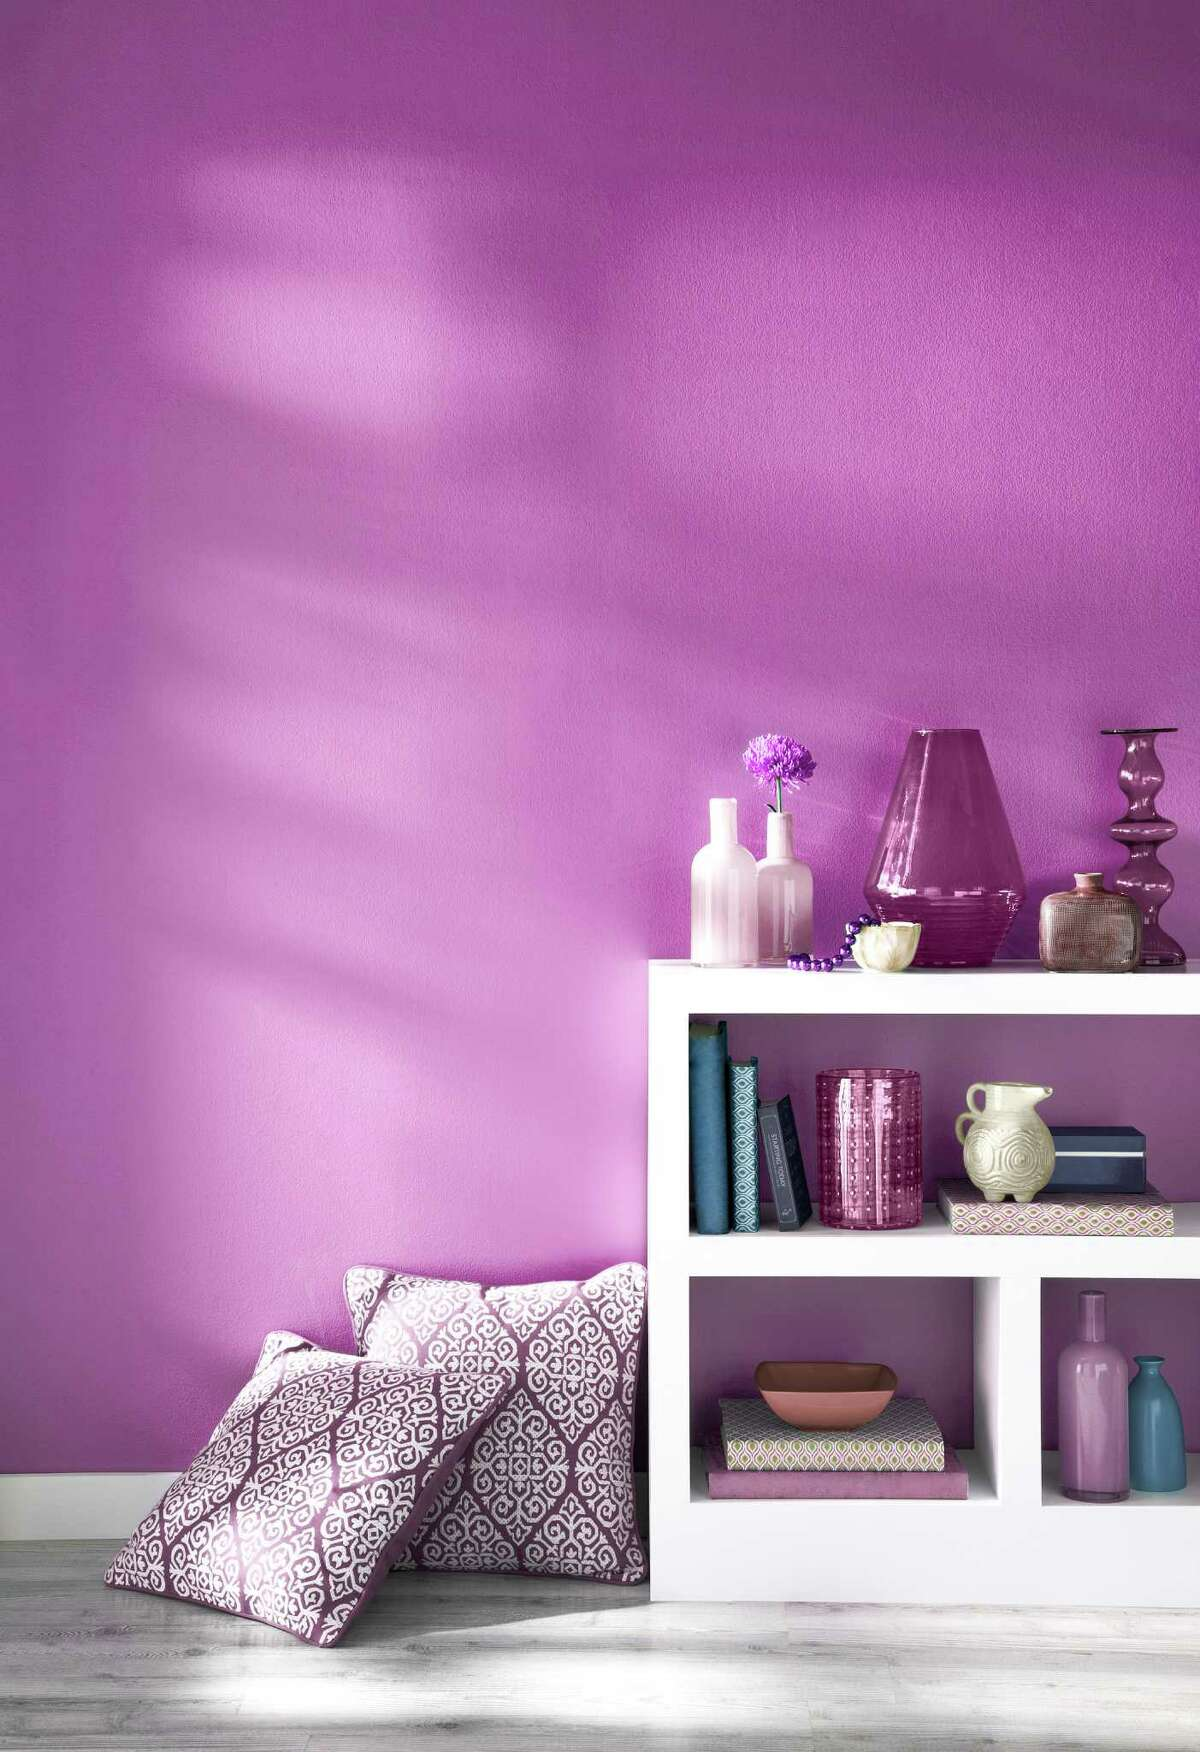 Shades of Radiant Orchid create warmth and drama in the home.